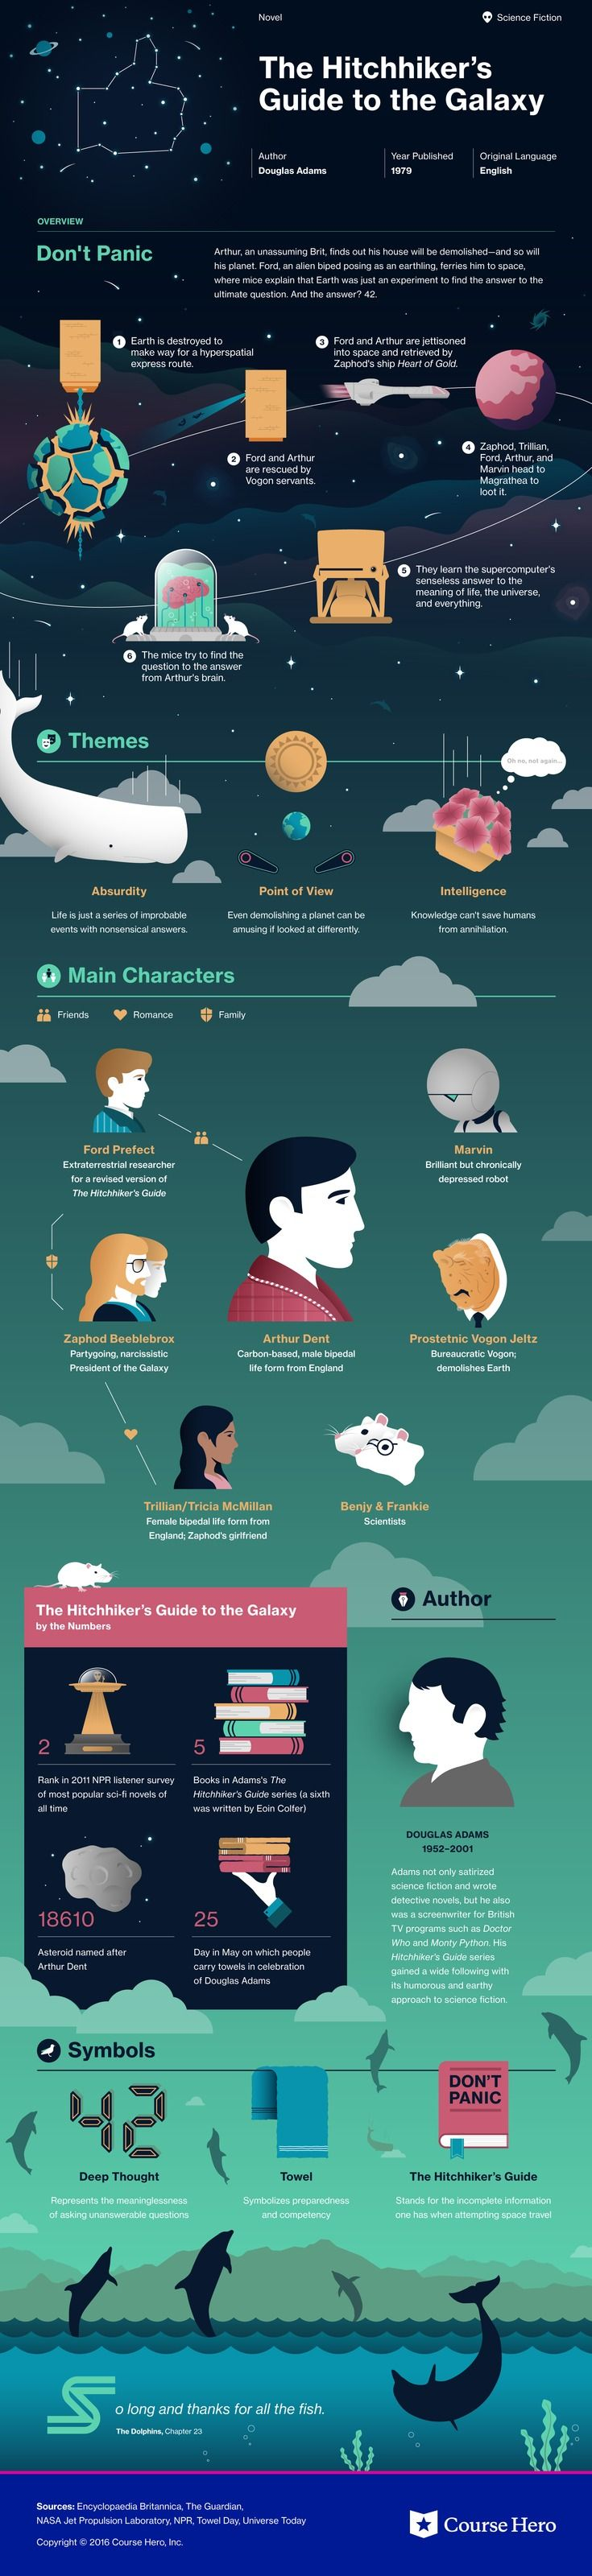 This @CourseHero infographic on The Hitchhiker's Guide to the Galaxy is both…